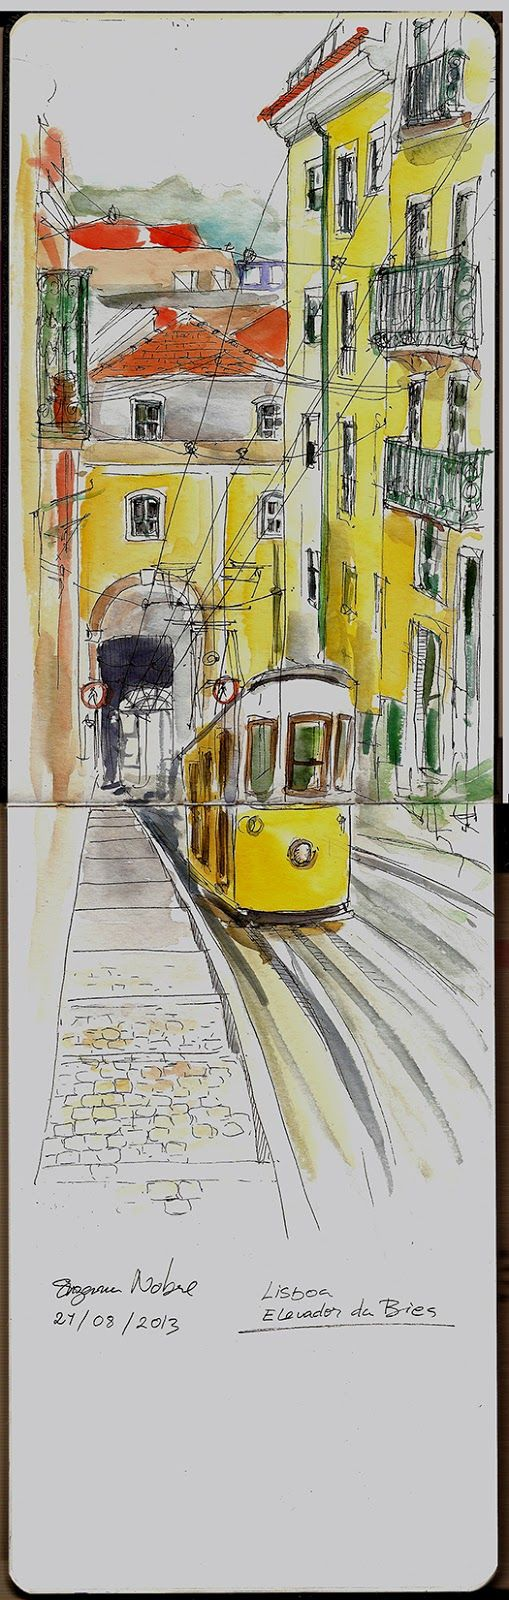 Urban Sketchers Portugal: Elevador da bica